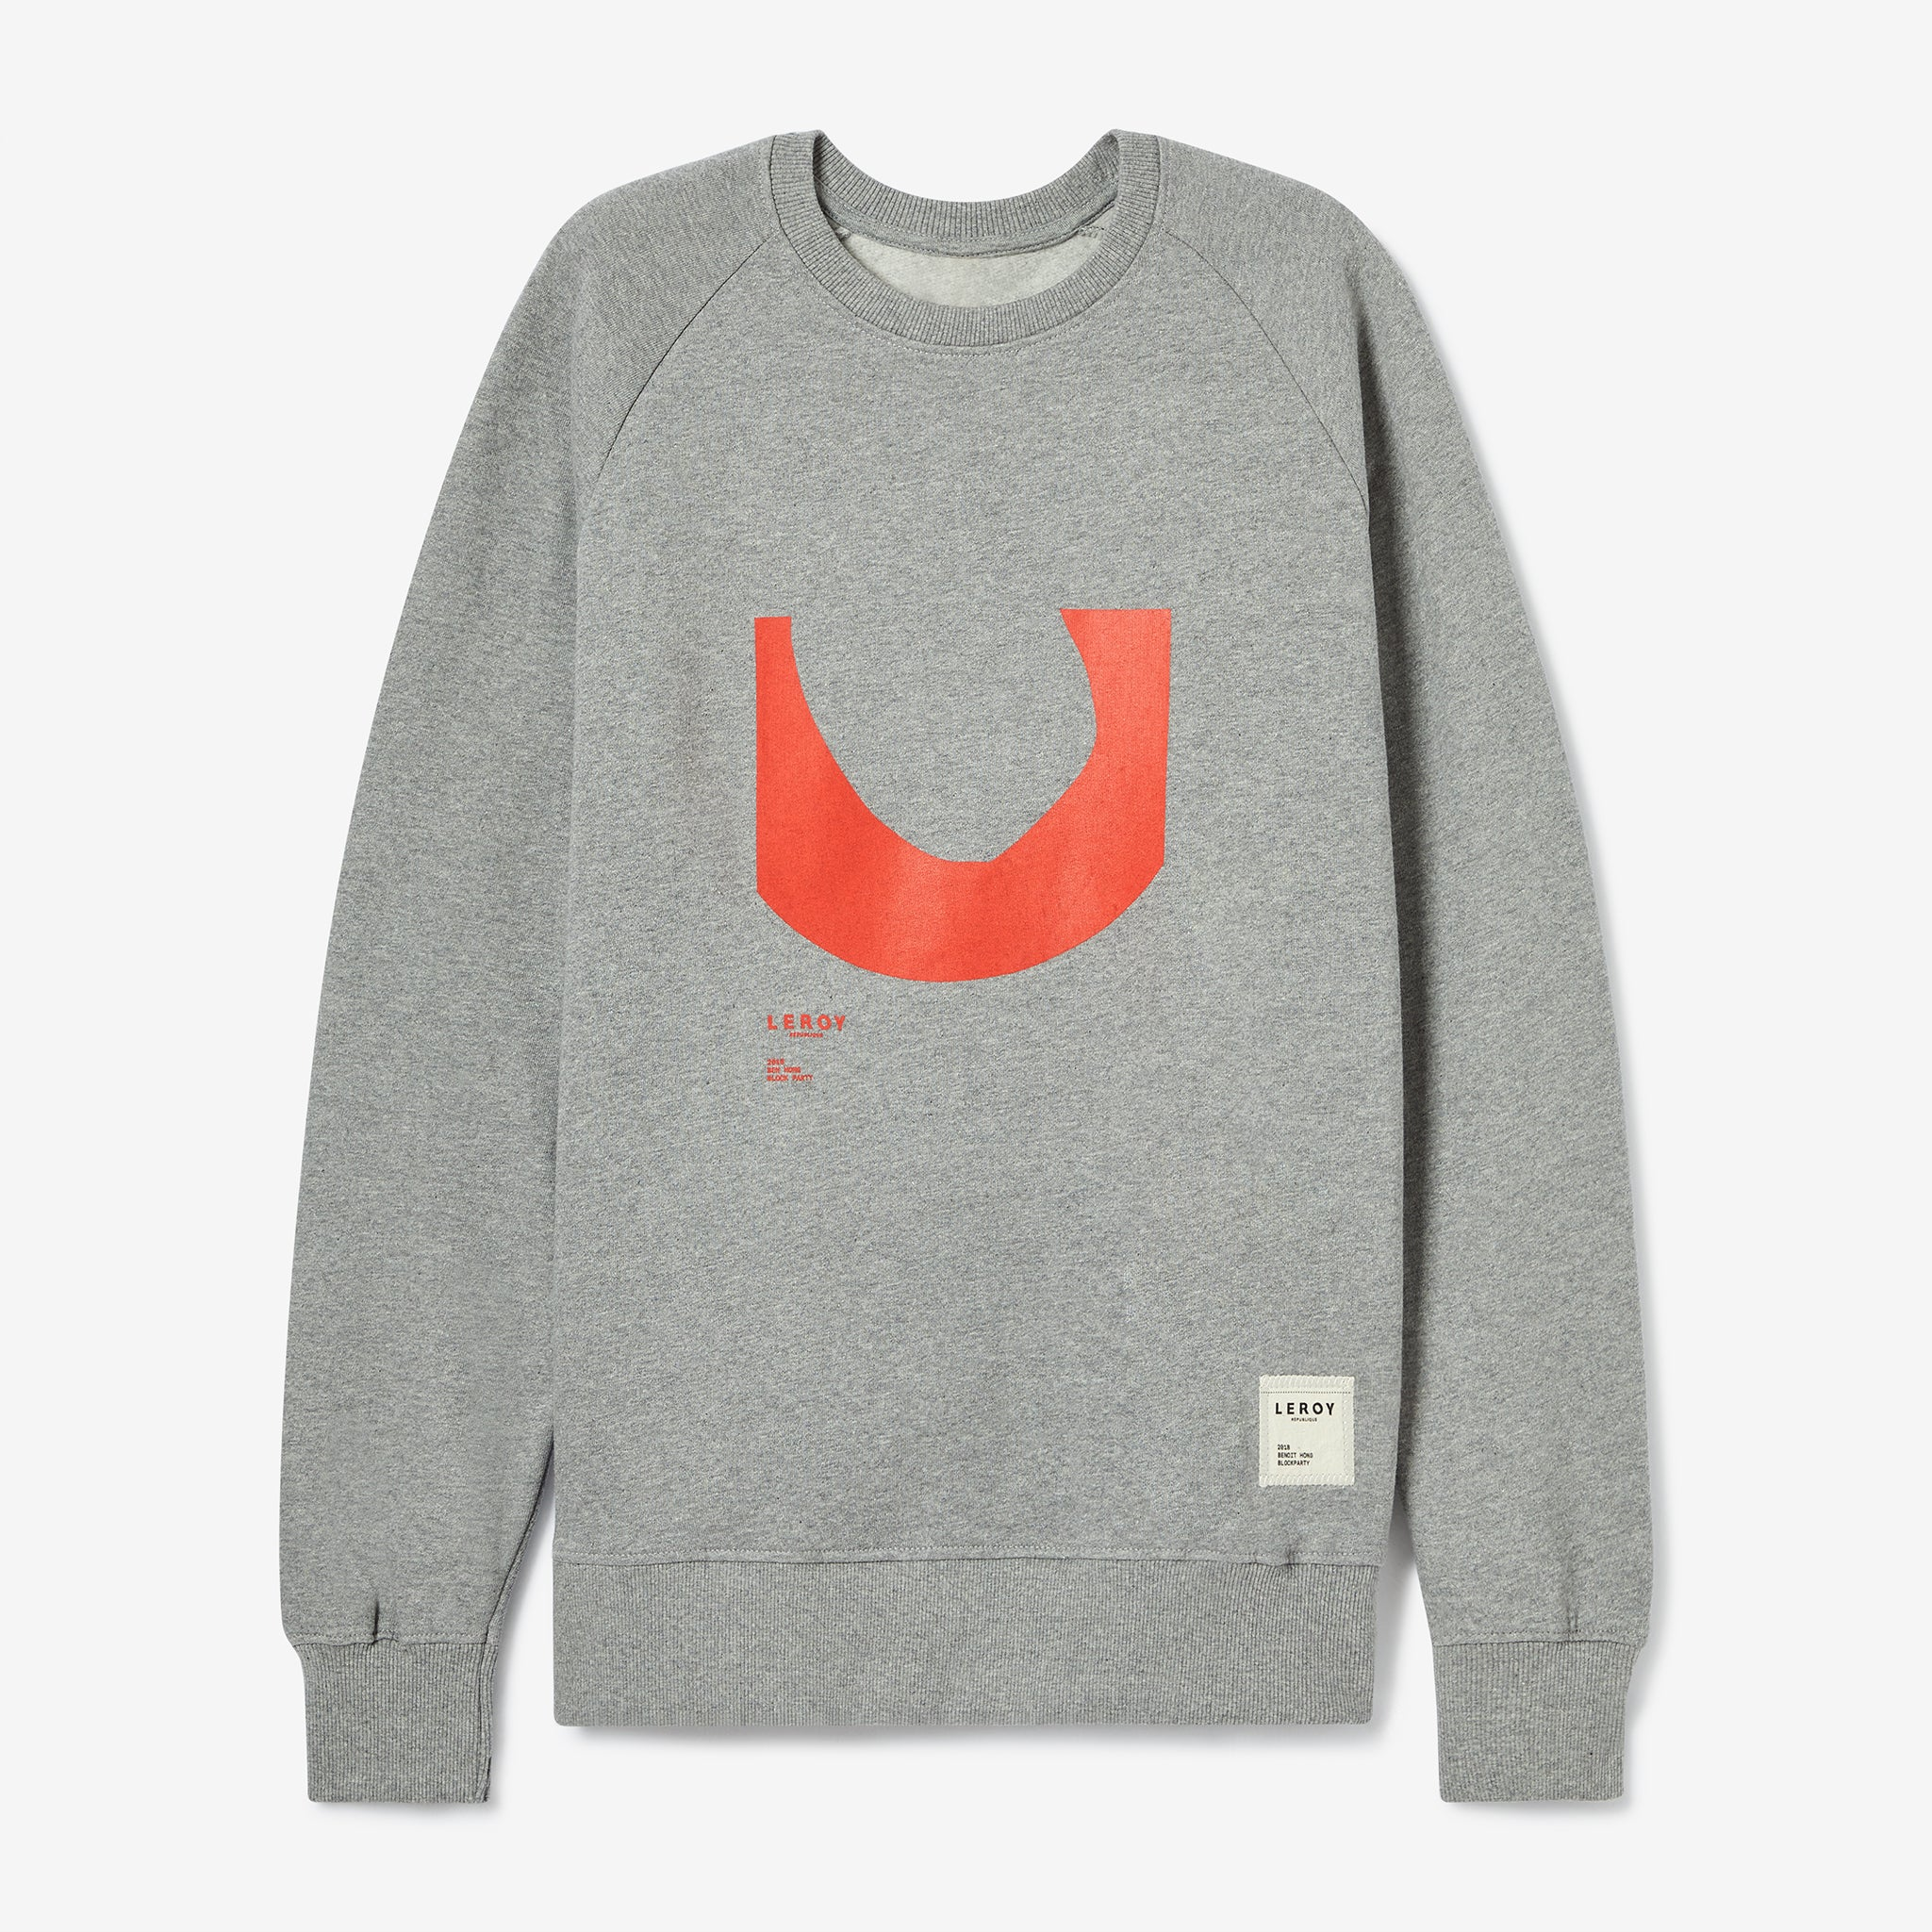 Ditch bright red crew neck